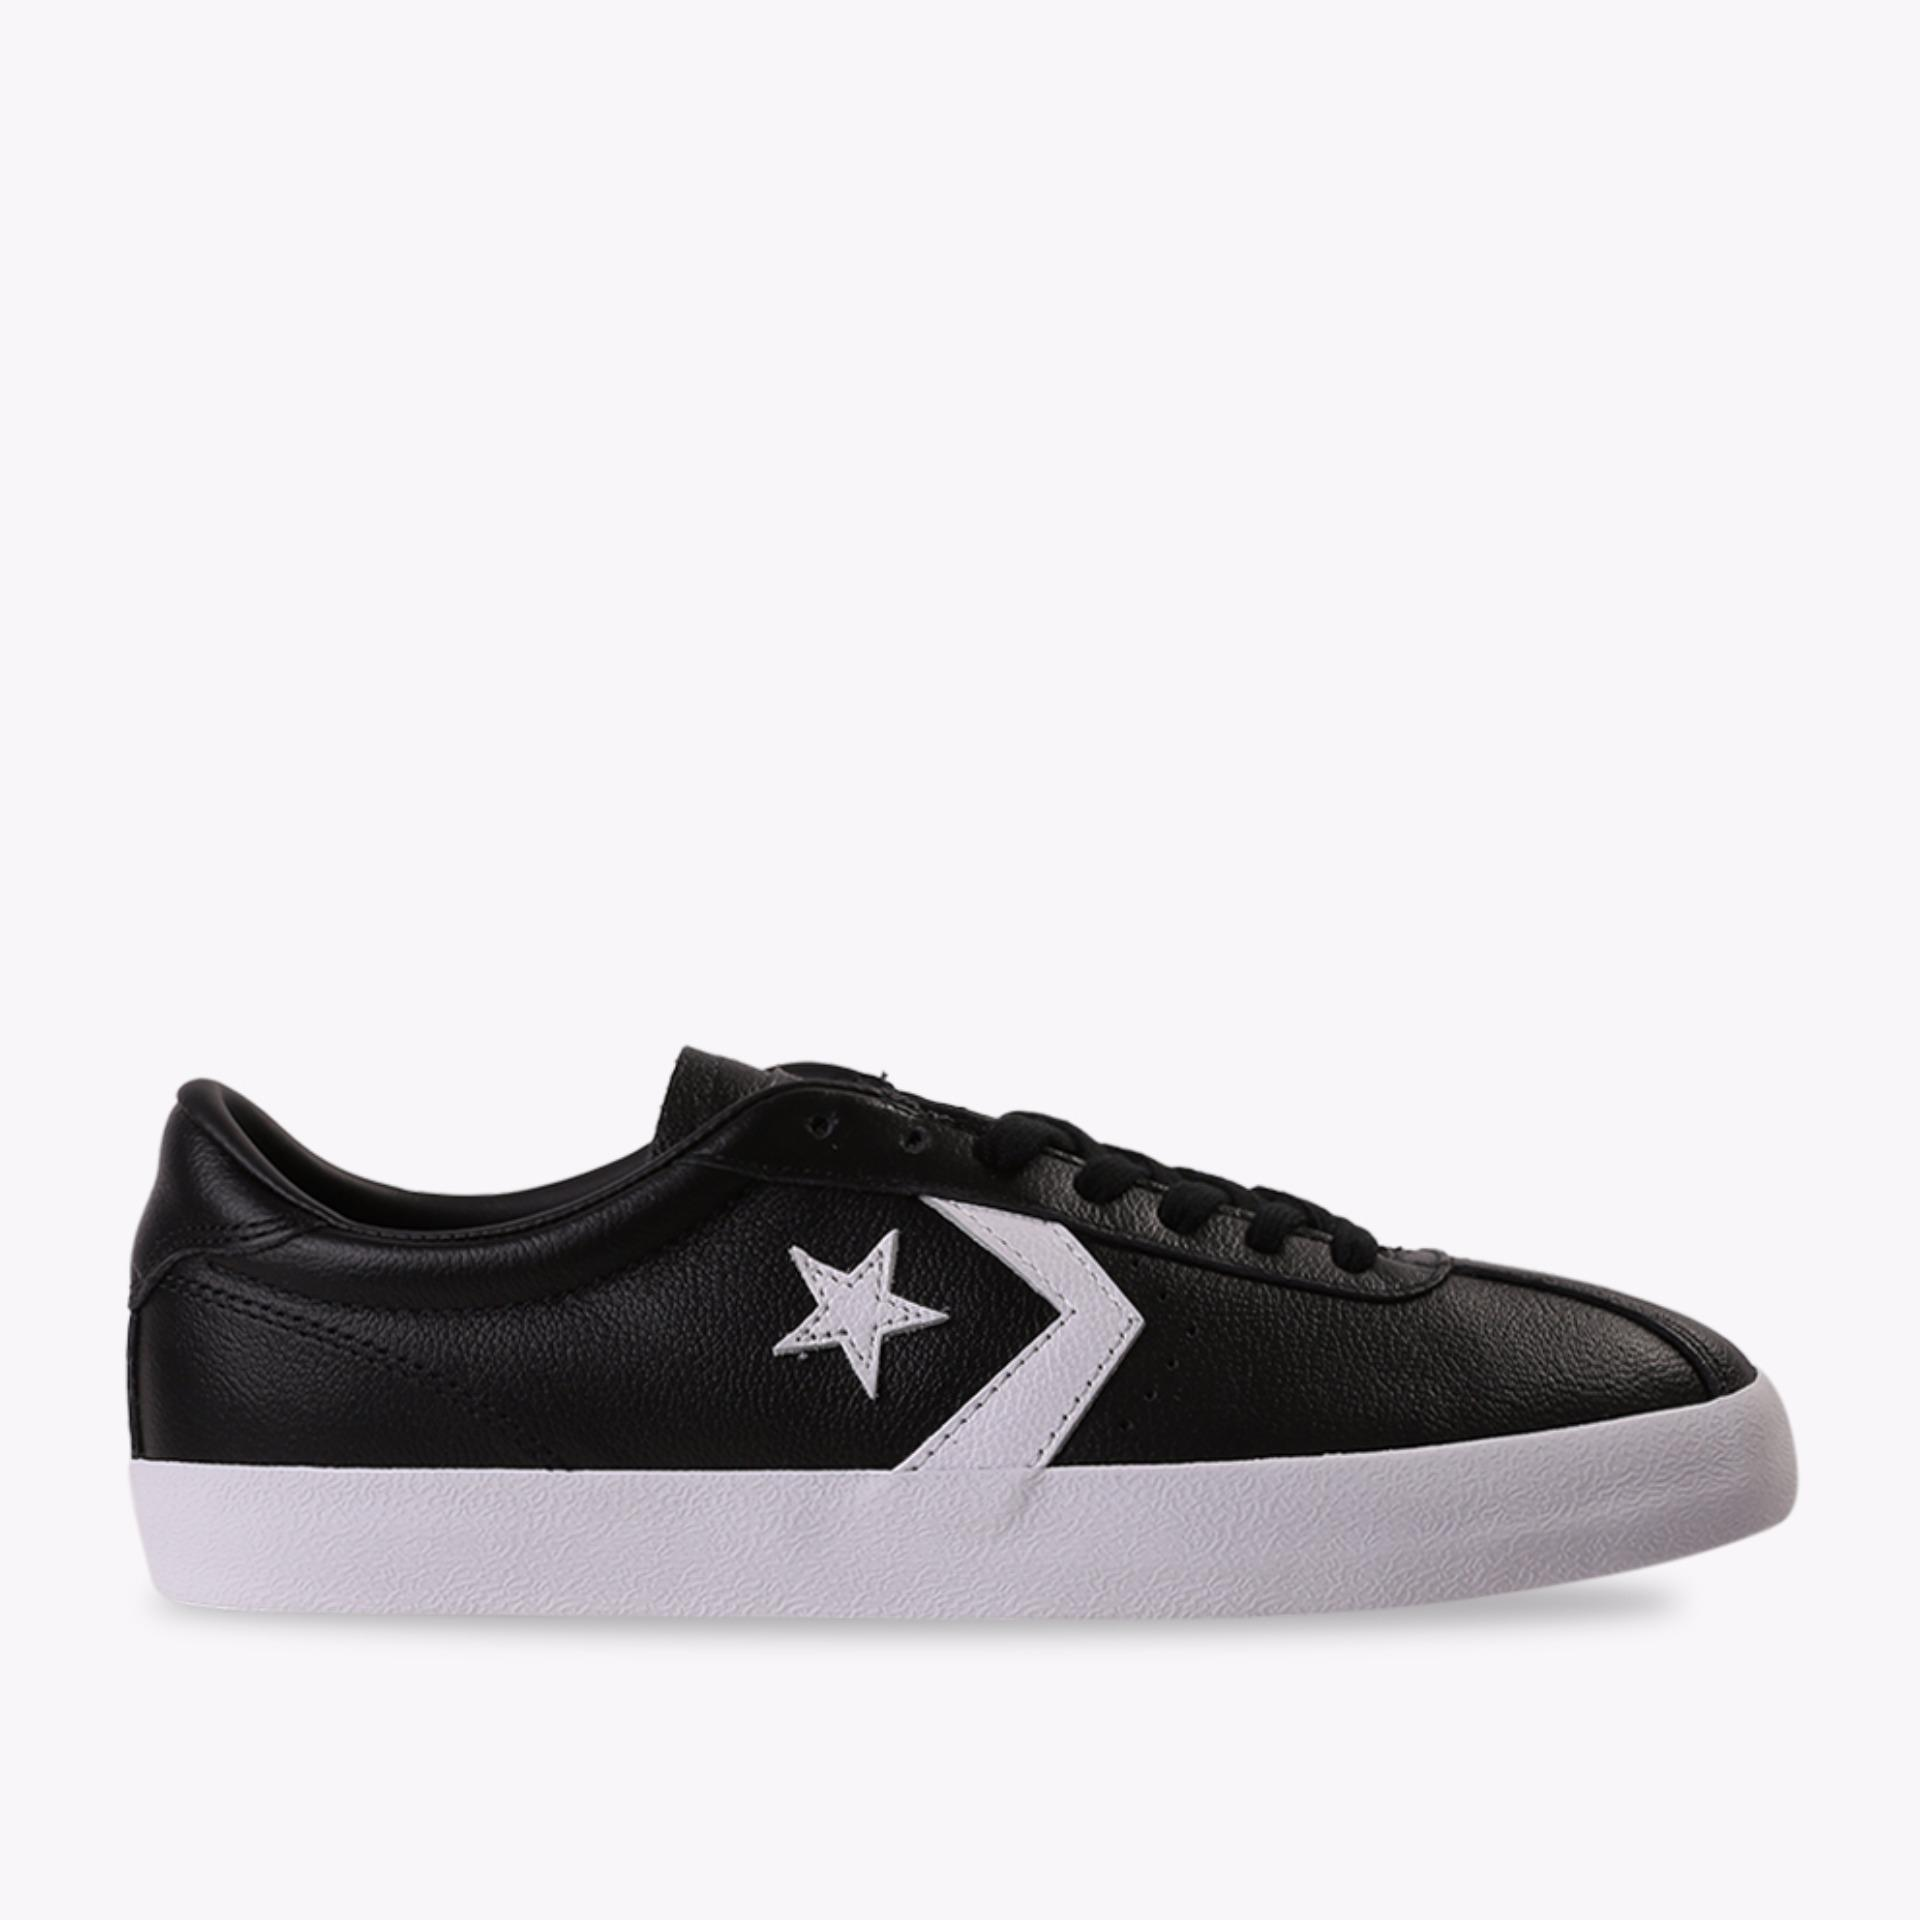 Beli Converse Breakpoint Leather Ox Men S Sneakers Shoes Hitam Terbaru